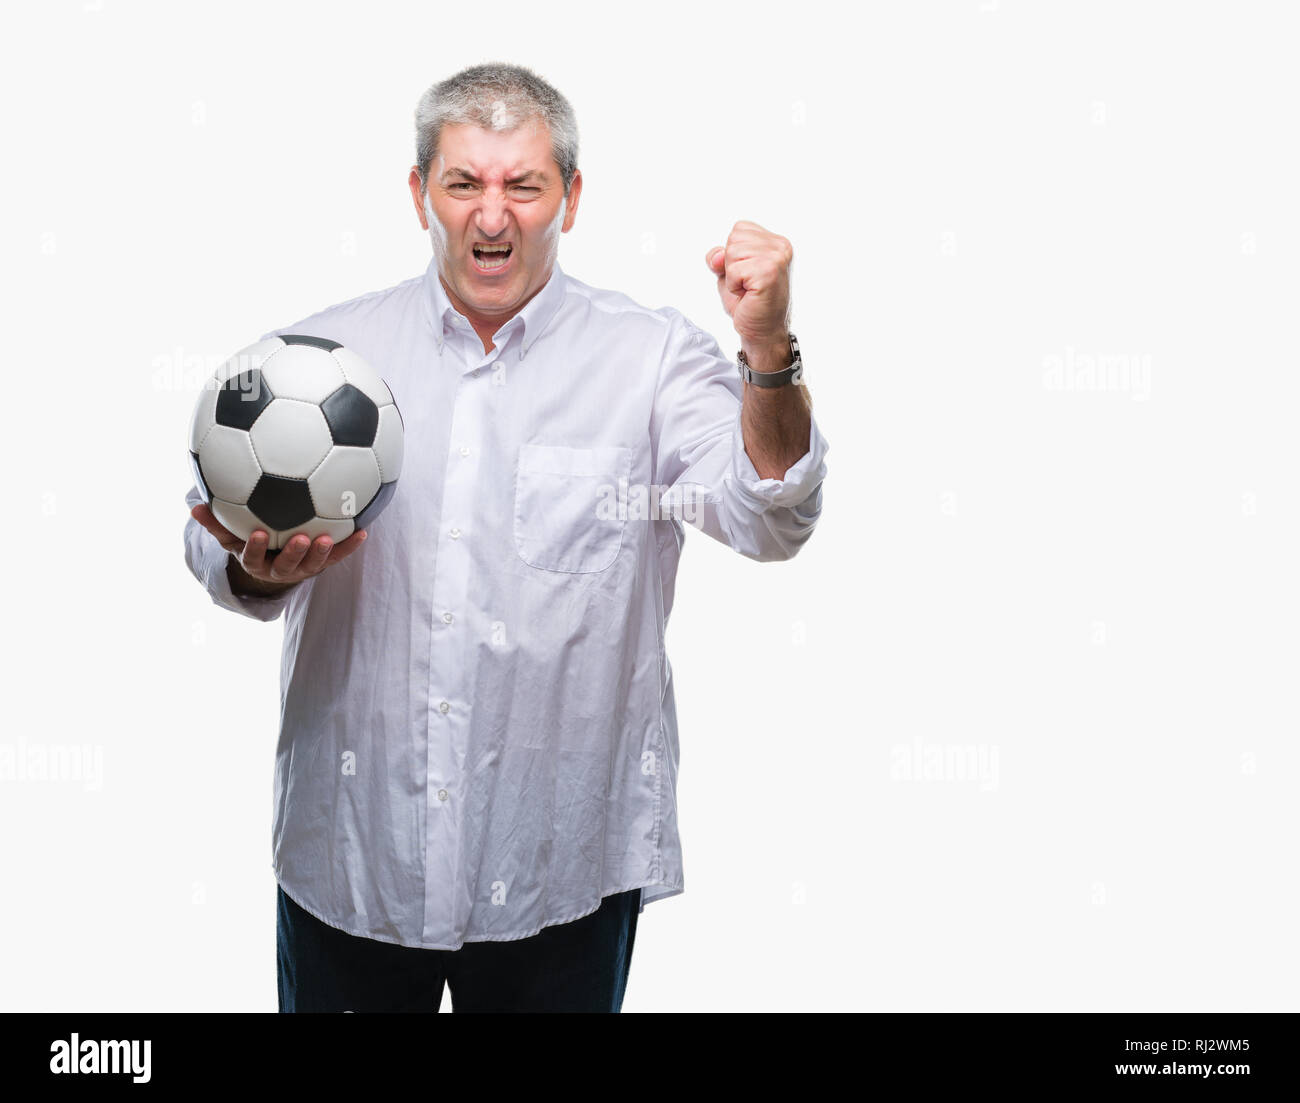 69525aa68 Handsome senior man holding soccer football ball over isolated background  annoyed and frustrated shouting with anger